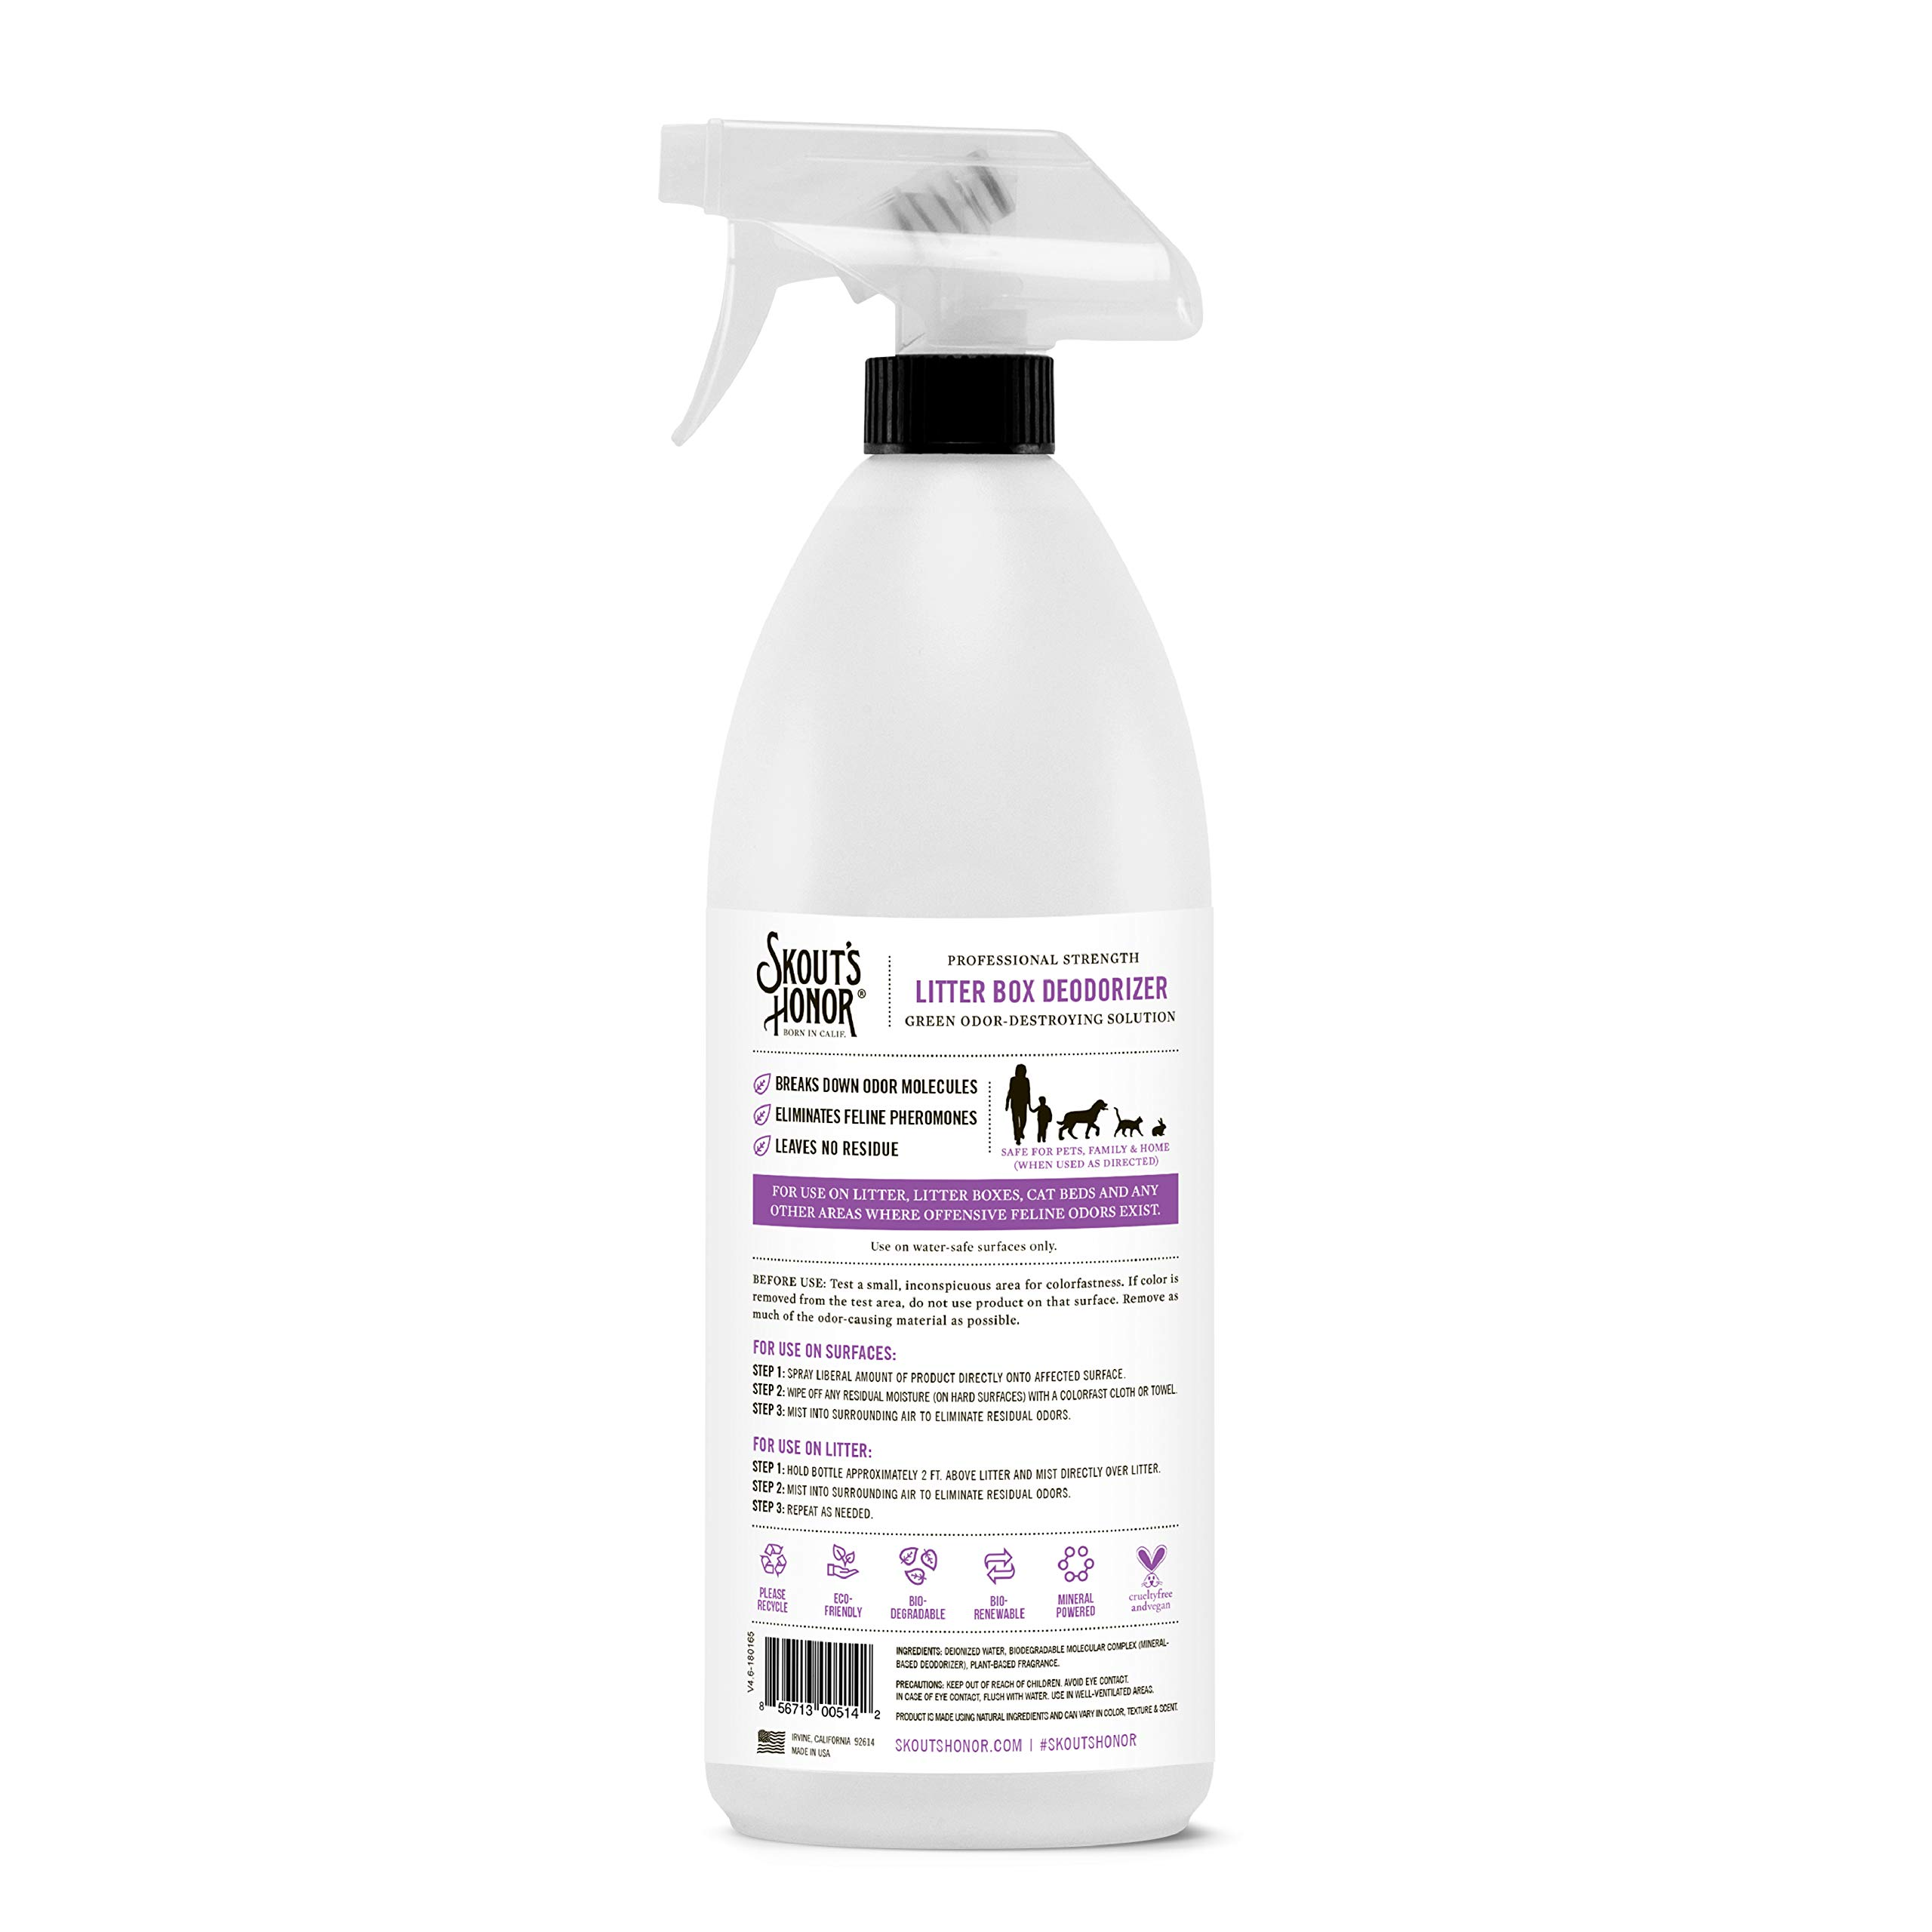 Skout's Honor Professional Strength, All-Natural Cat Litter Box Deodorizer - Non-Toxic, Biodegradable, and Eco-Friendly - Destroys Foul Odor Molecules On Contact - 32-Ounce Spray Bottle by SKOUT'S HONOR (Image #3)